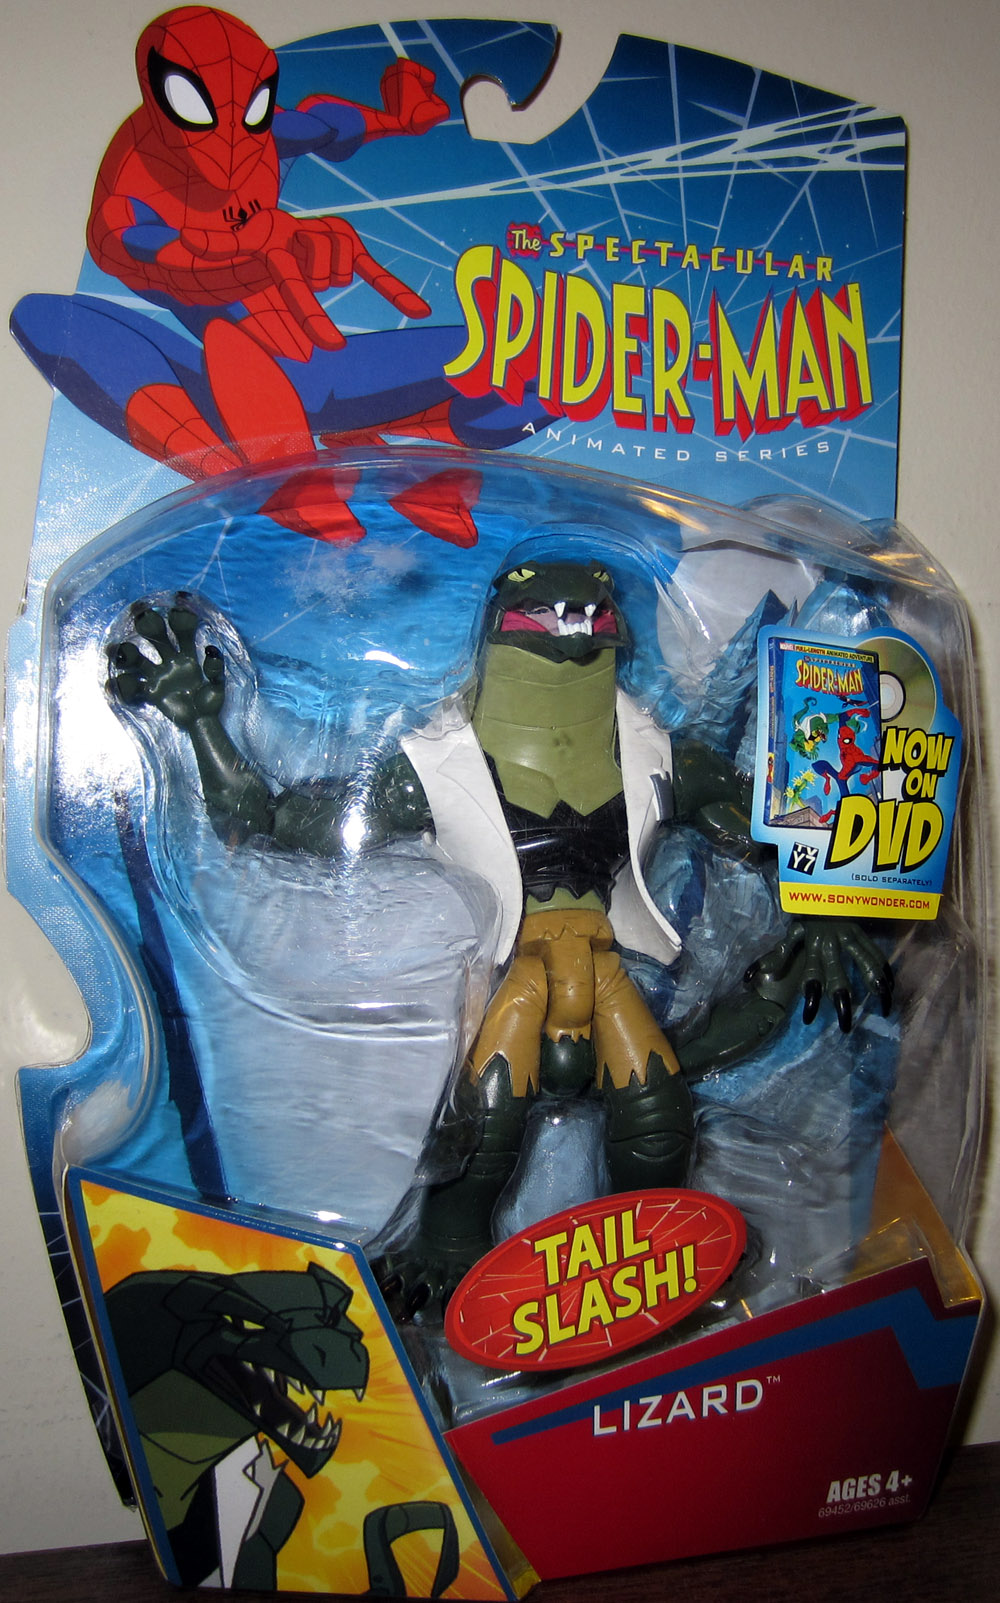 Lizard (The Spectacular Spider-Man Animated Series)